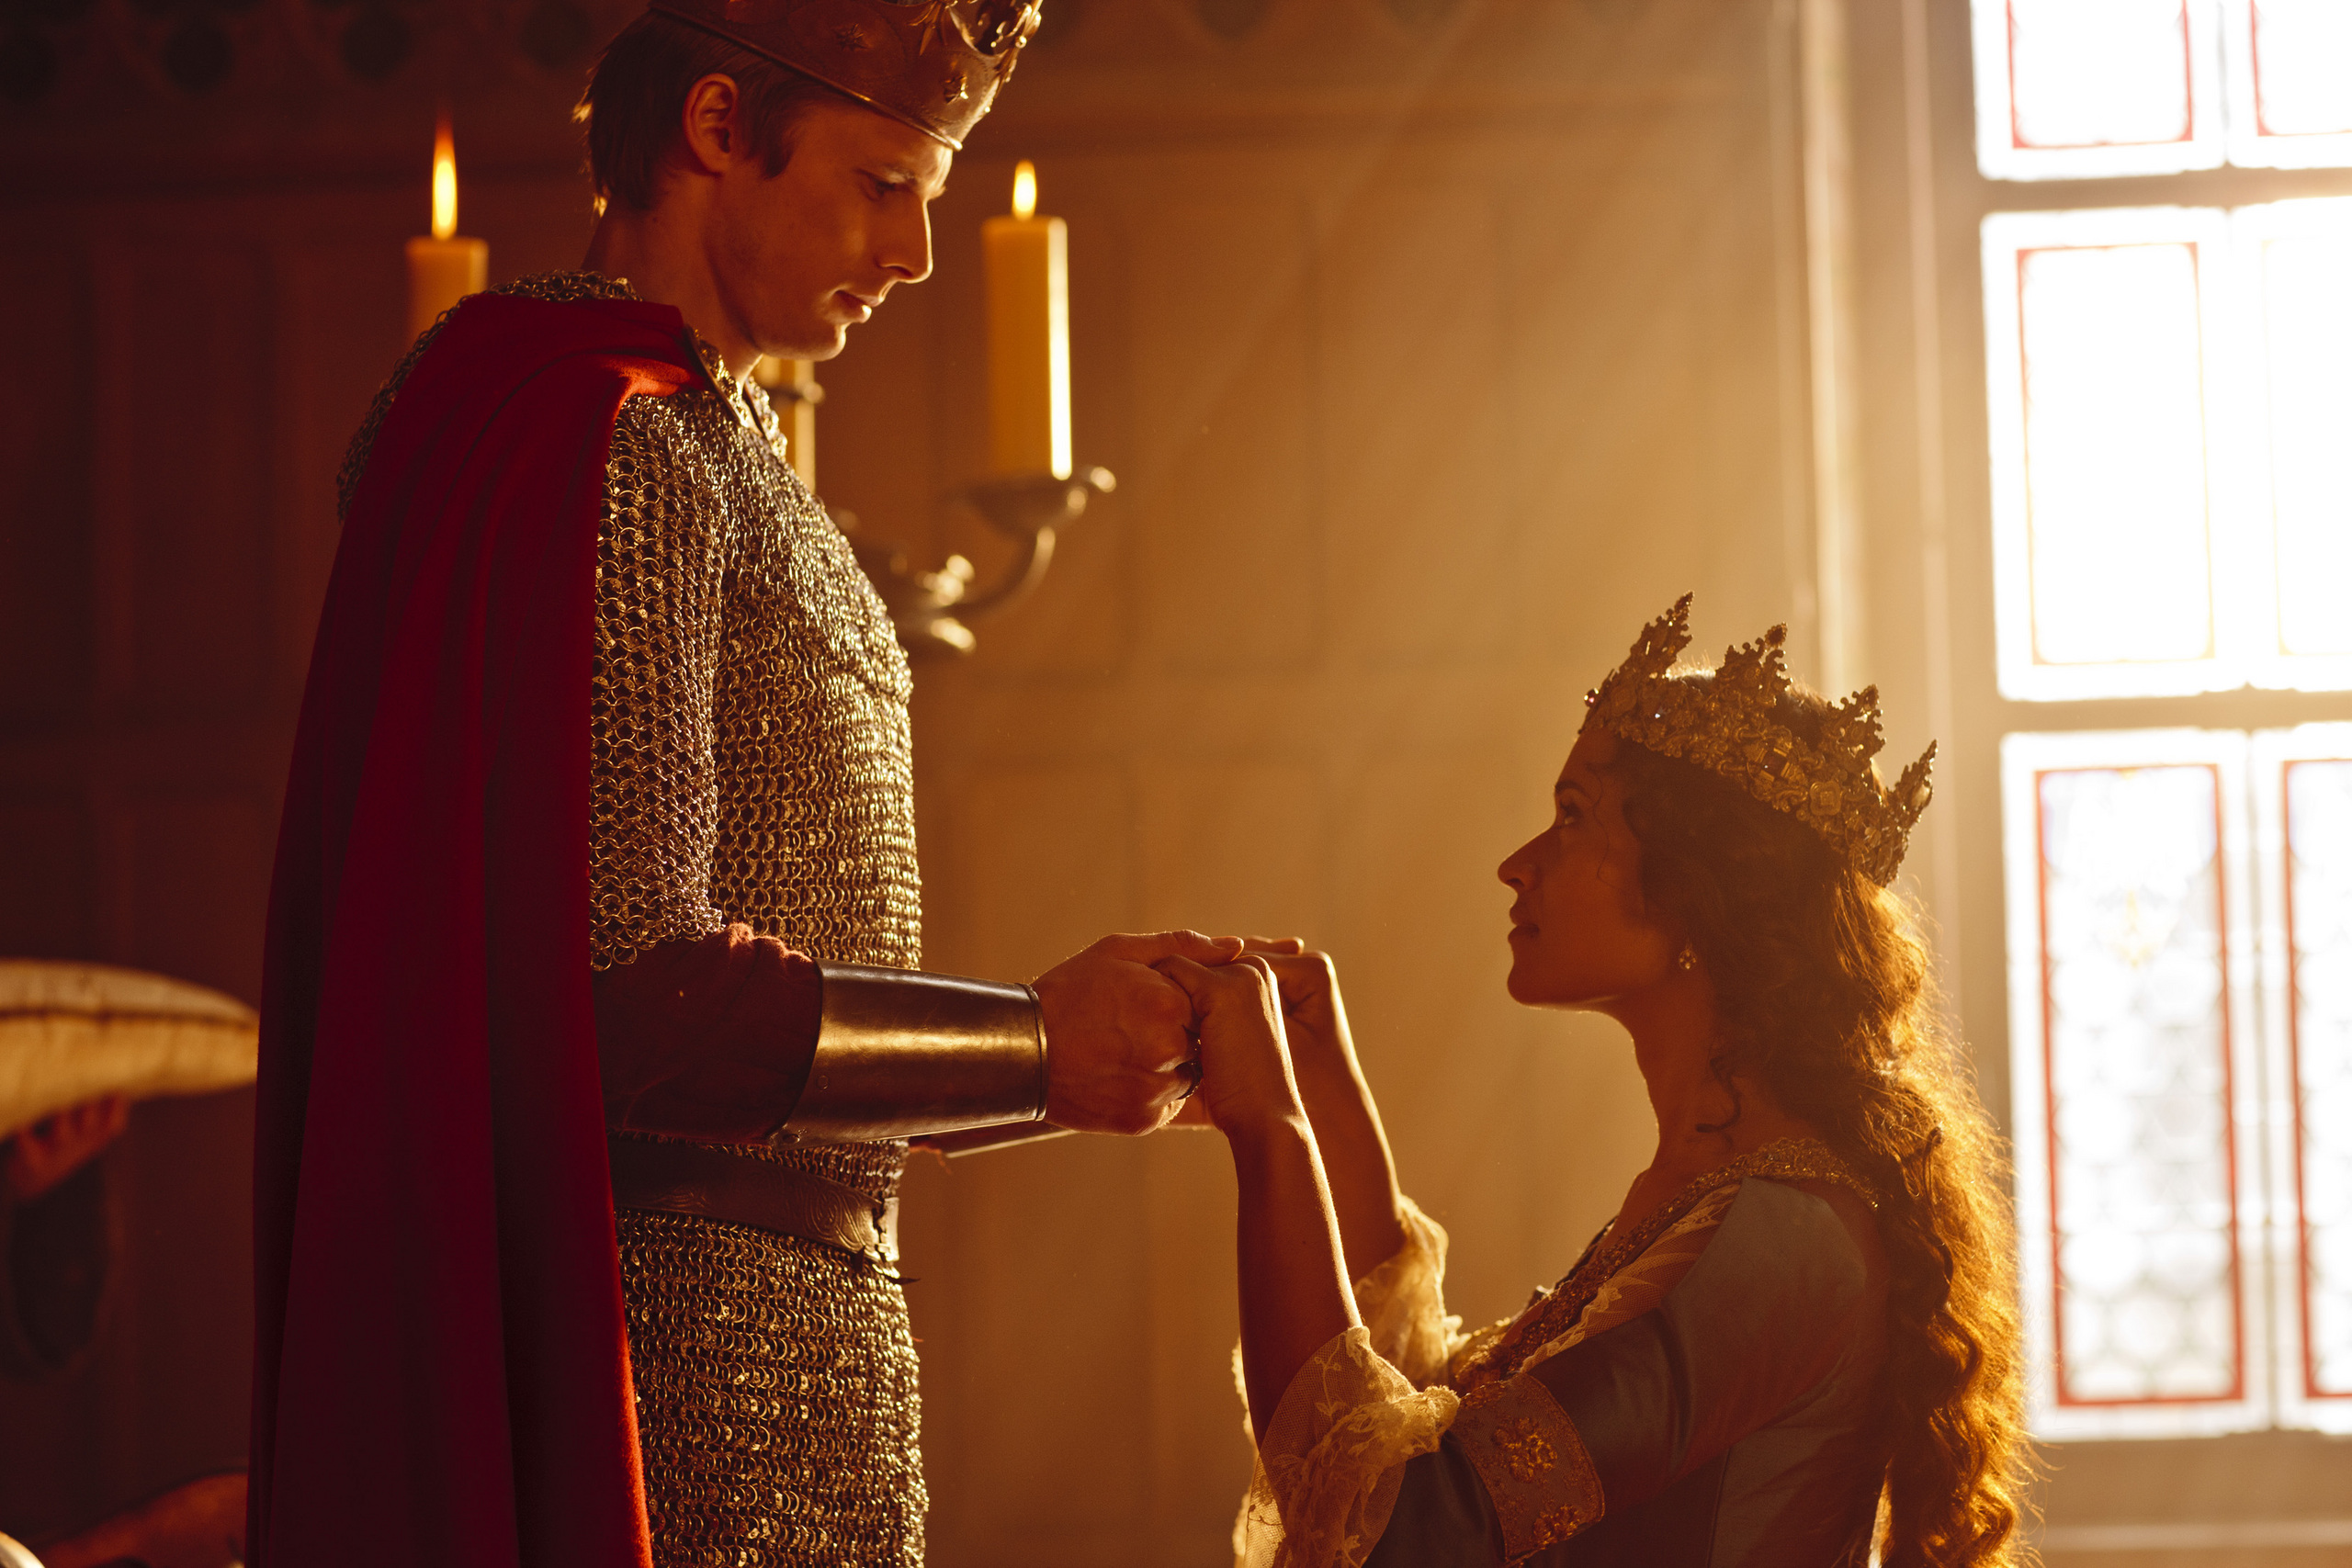 https://i2.wp.com/images5.fanpop.com/image/photos/28600000/King-Arthur-and-Queen-Guinevere-merlin-on-bbc-28658670-2560-1707.jpg